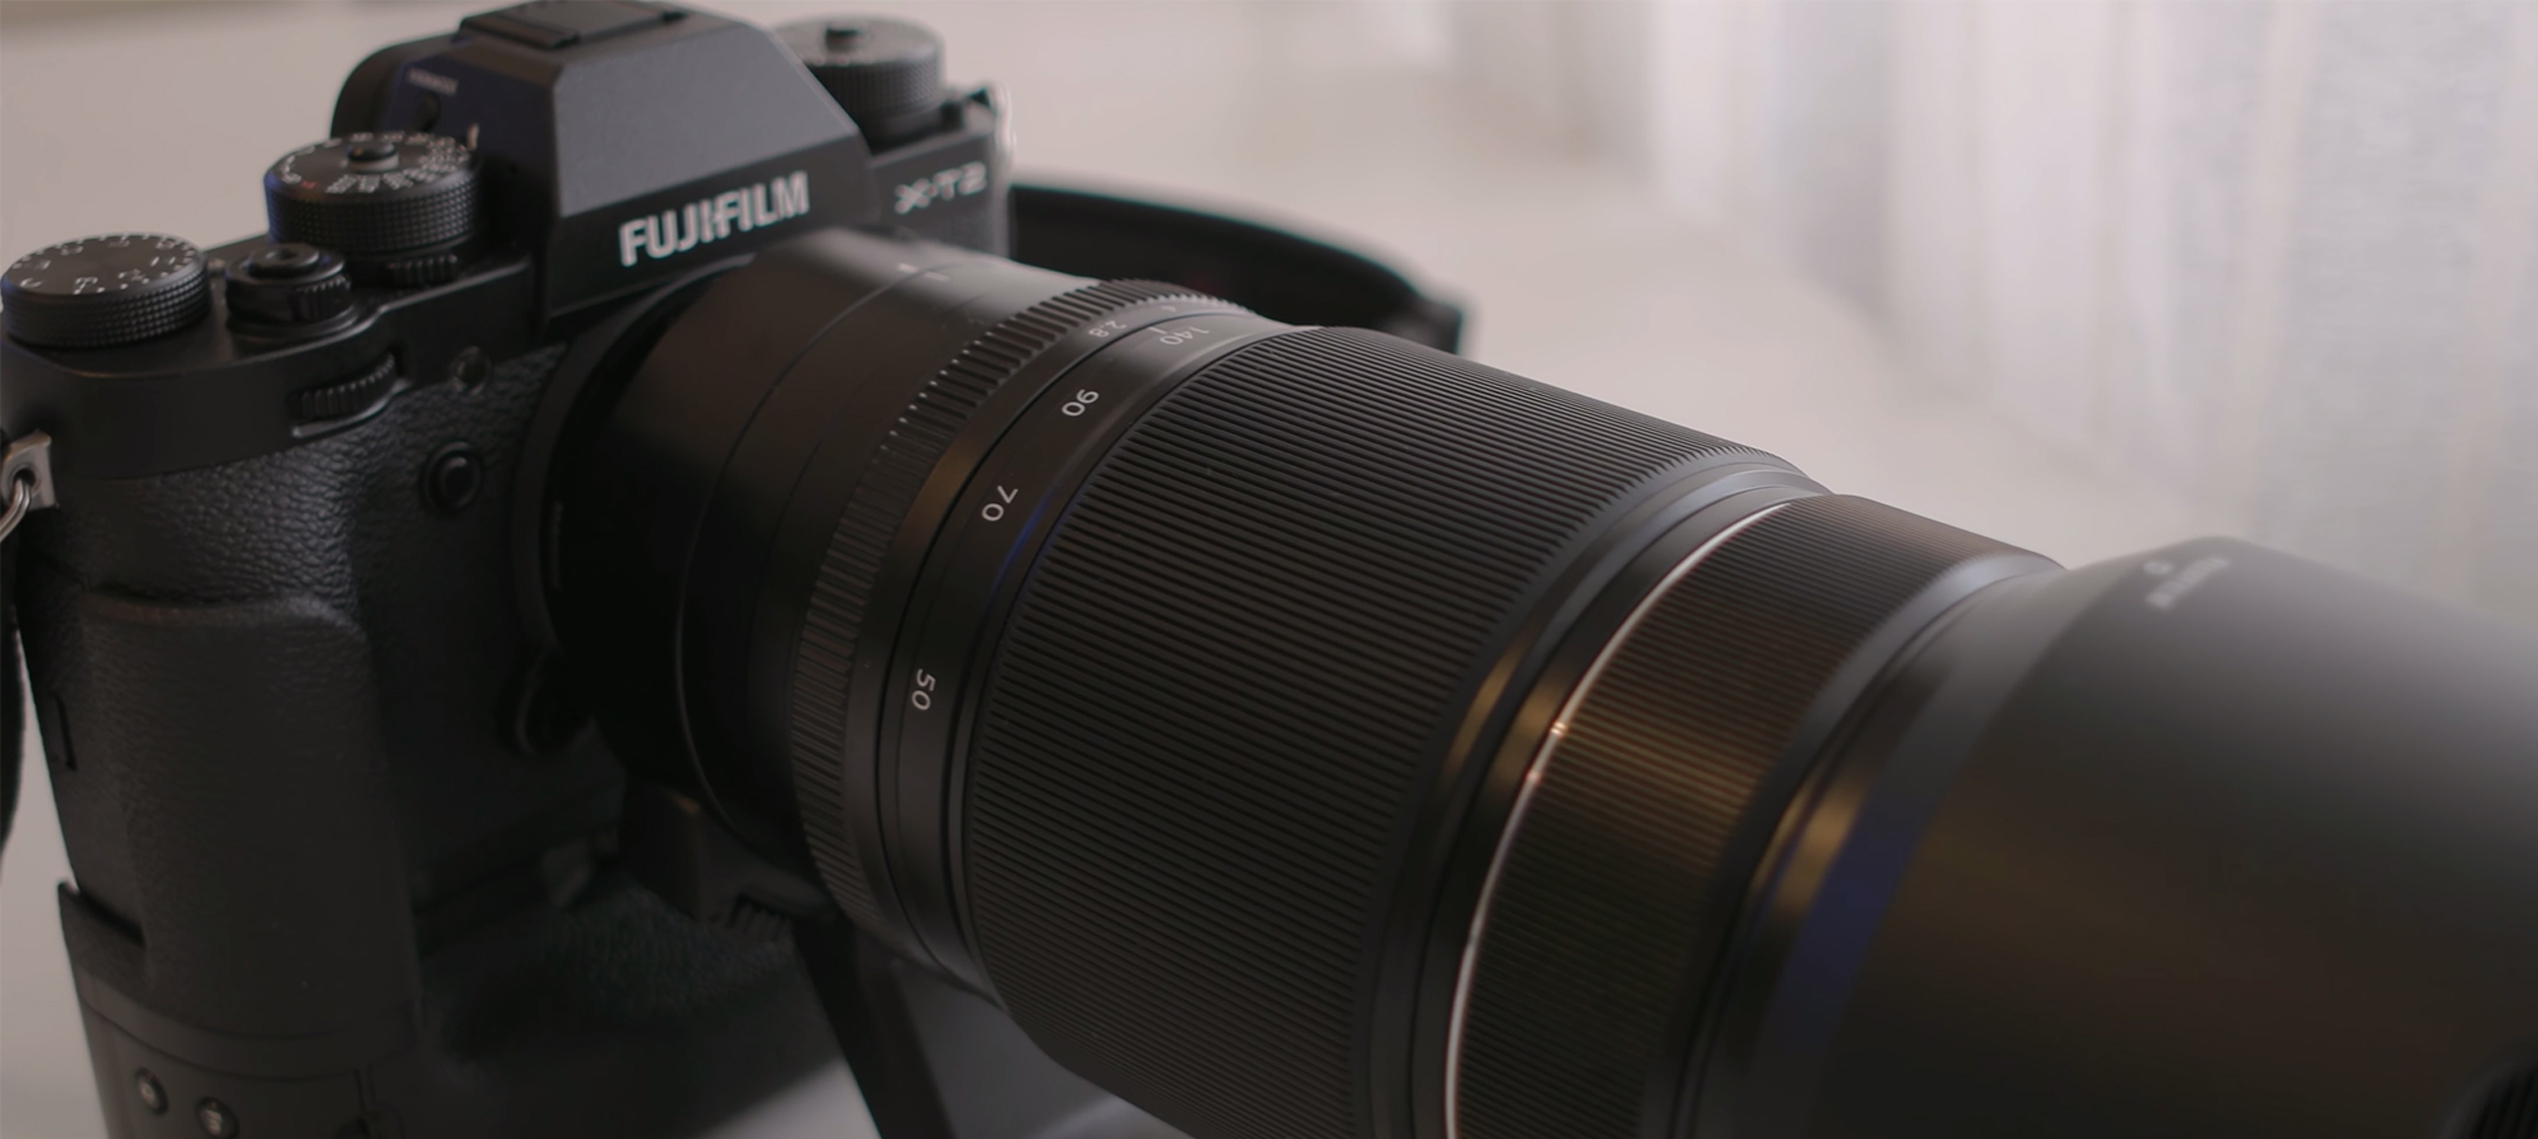 Fujinon 50-140mm 2.8 REVIEW